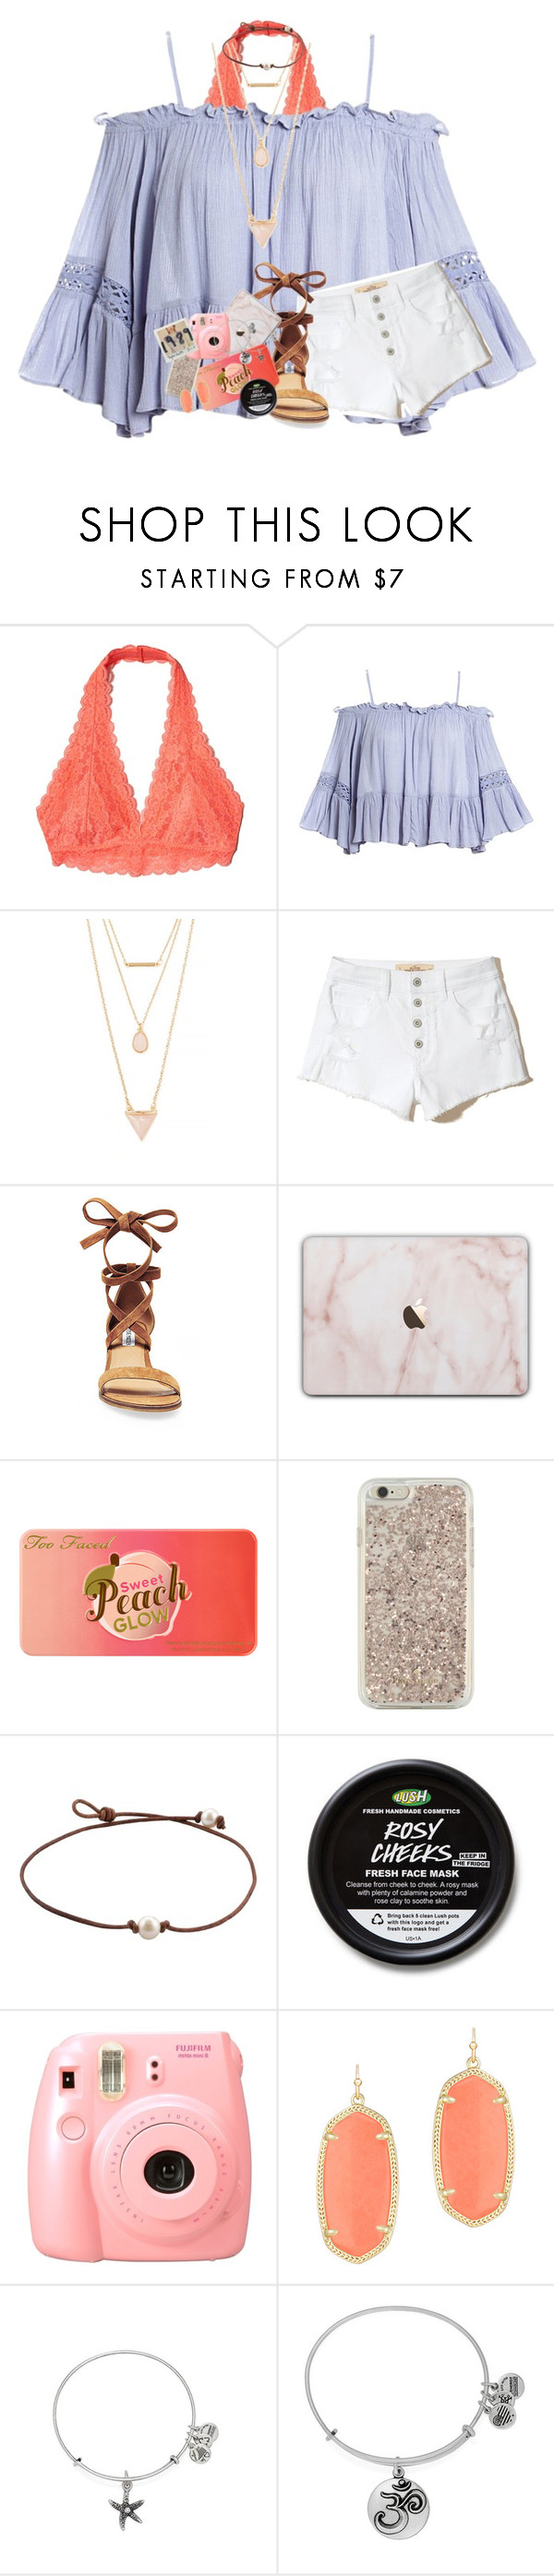 """taylor's music is back on spotify "" by lindsaygreys ❤ liked on Polyvore featuring Hollister Co., Sans Souci, Forever 21, Steve Madden, Too Faced Cosmetics, Kate Spade, Fujifilm, Kendra Scott and Alex and Ani"